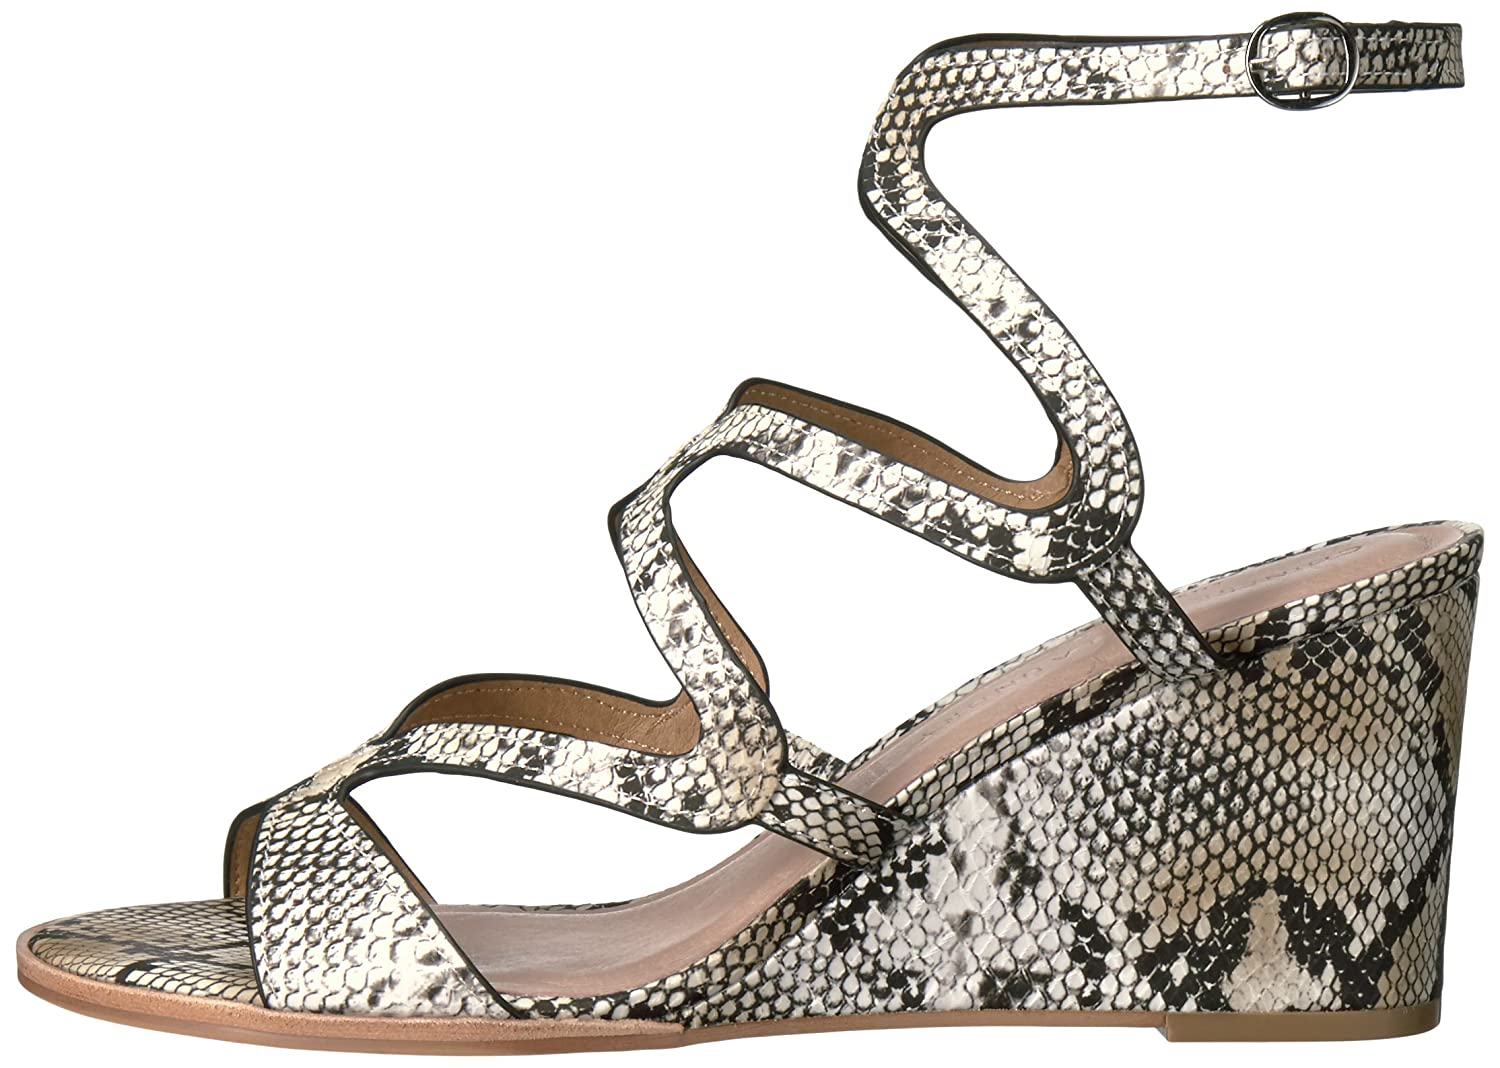 Chinese Laundry Frauen Frauen Laundry Platform Sandalen Natural Multi Snake a79cee